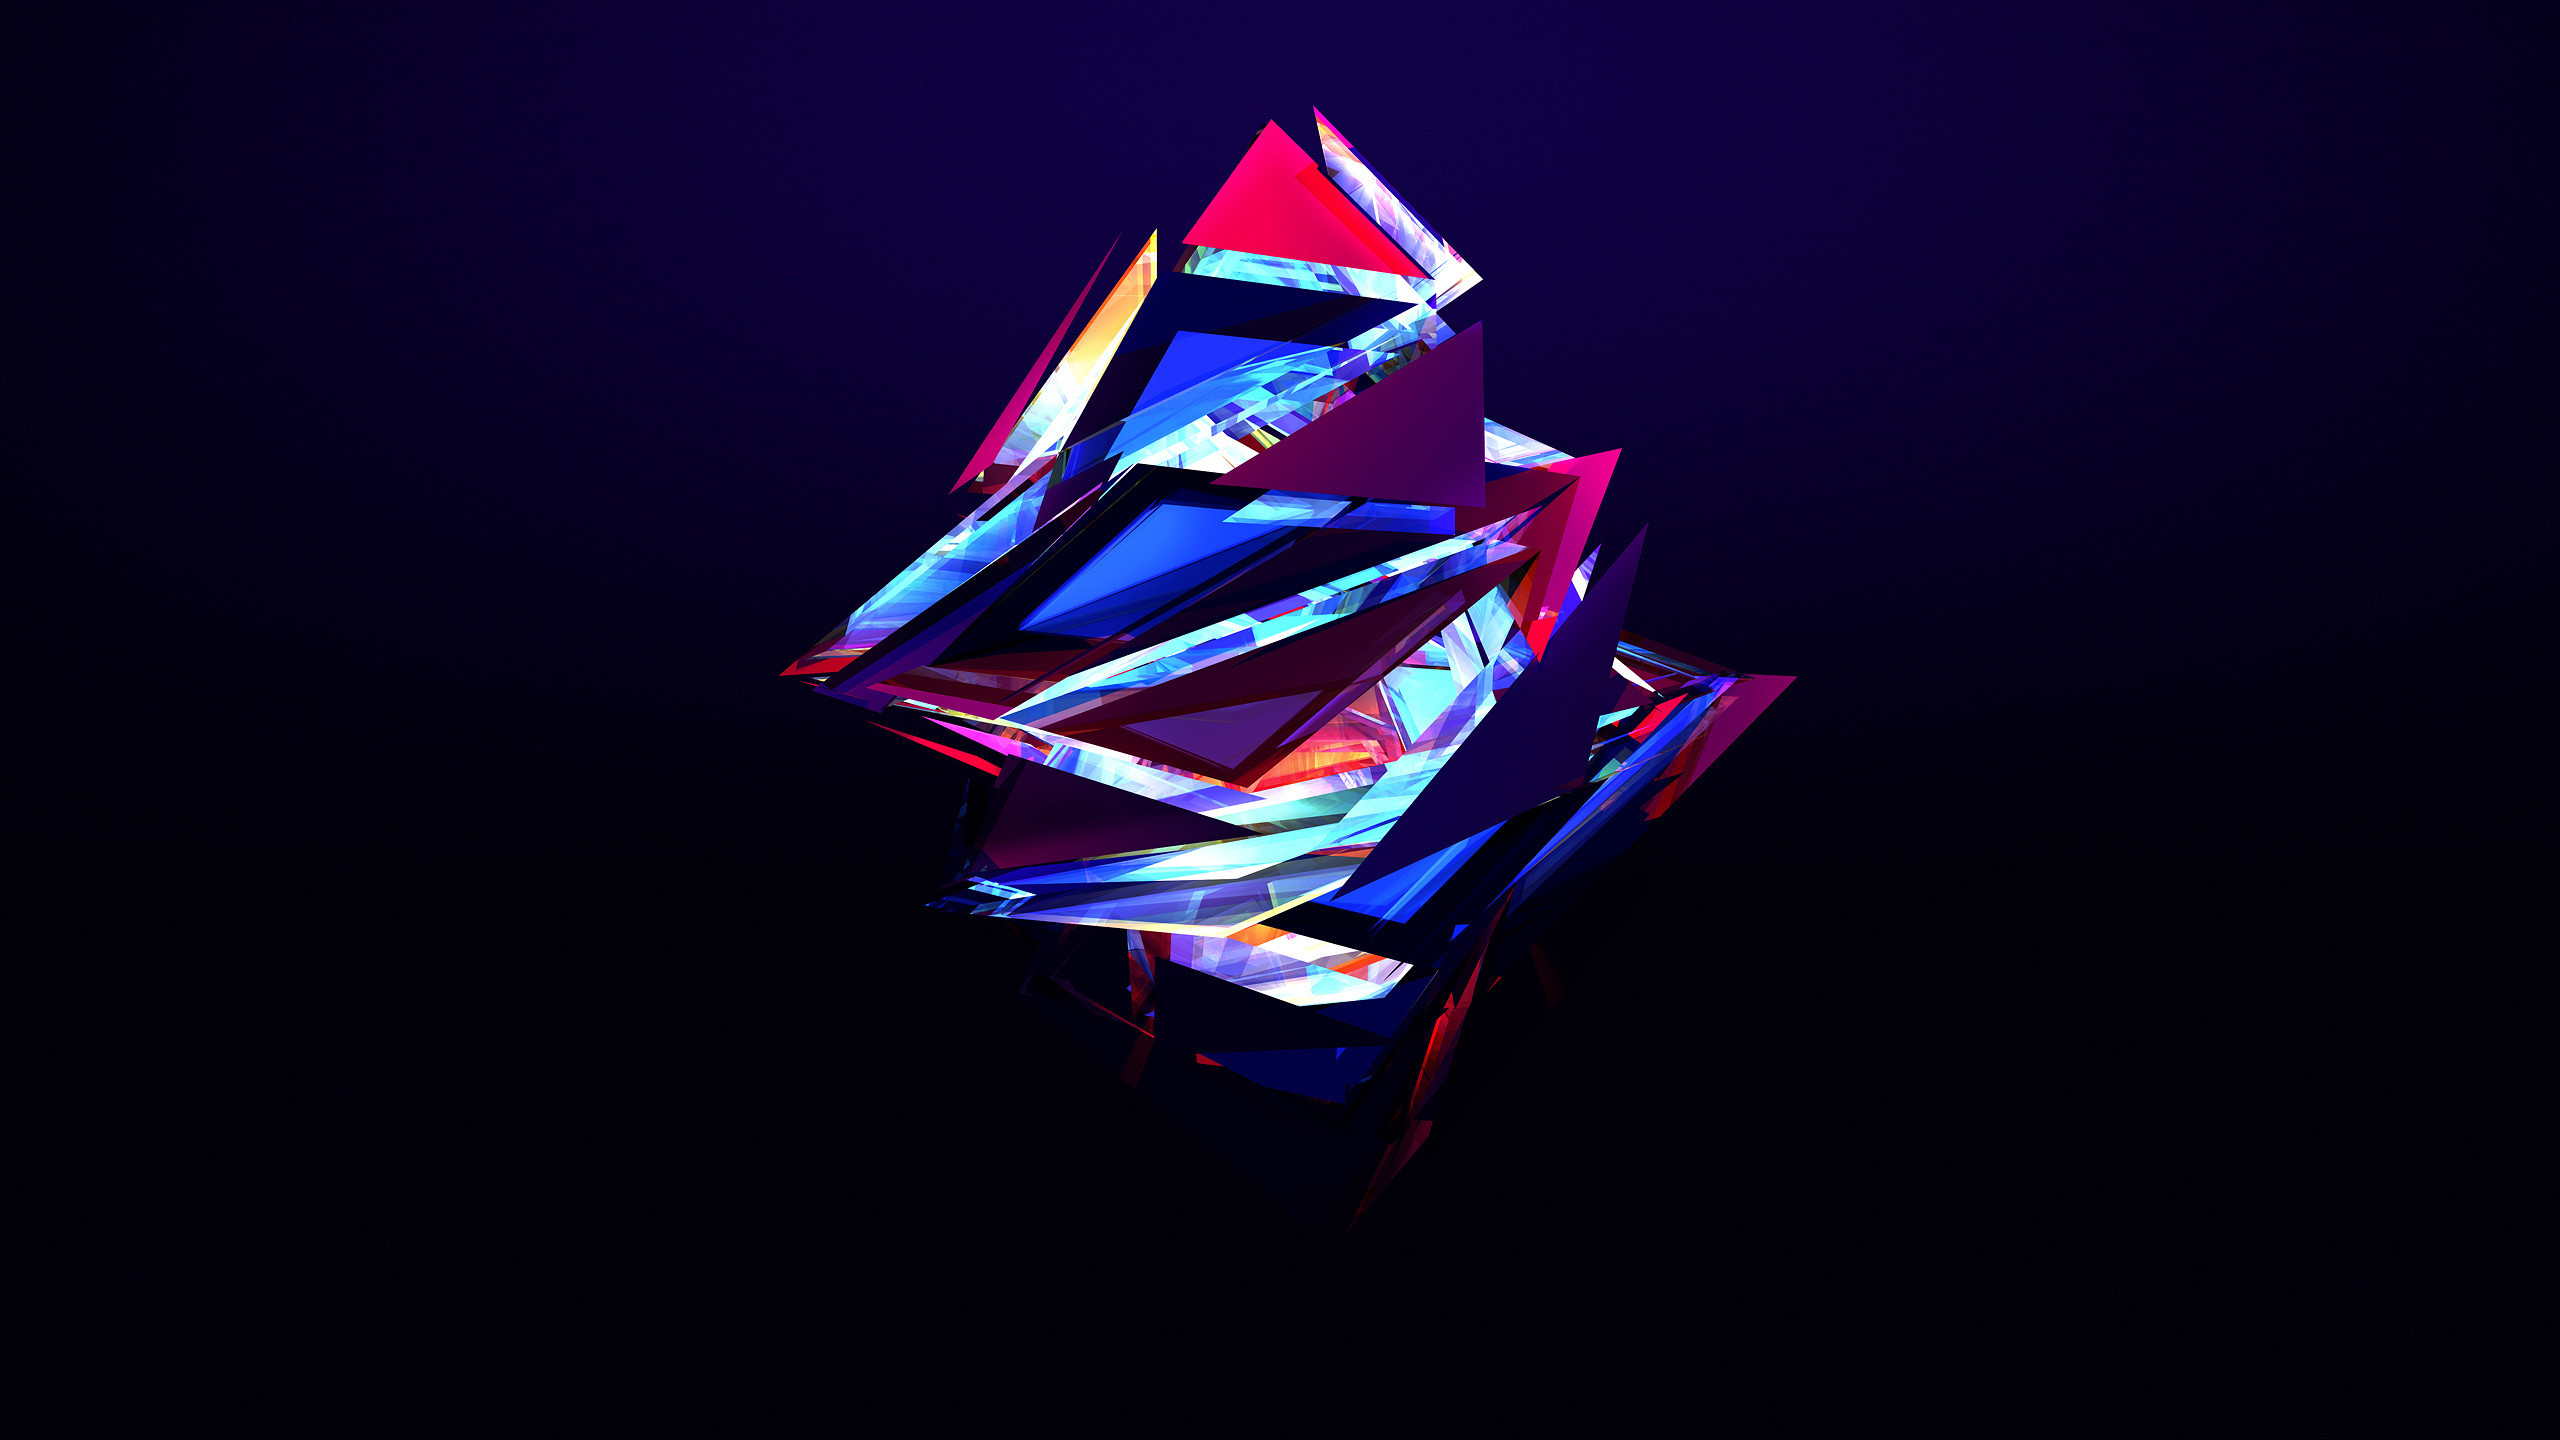 Res: 2560x1440, Tags: abstract Triangles